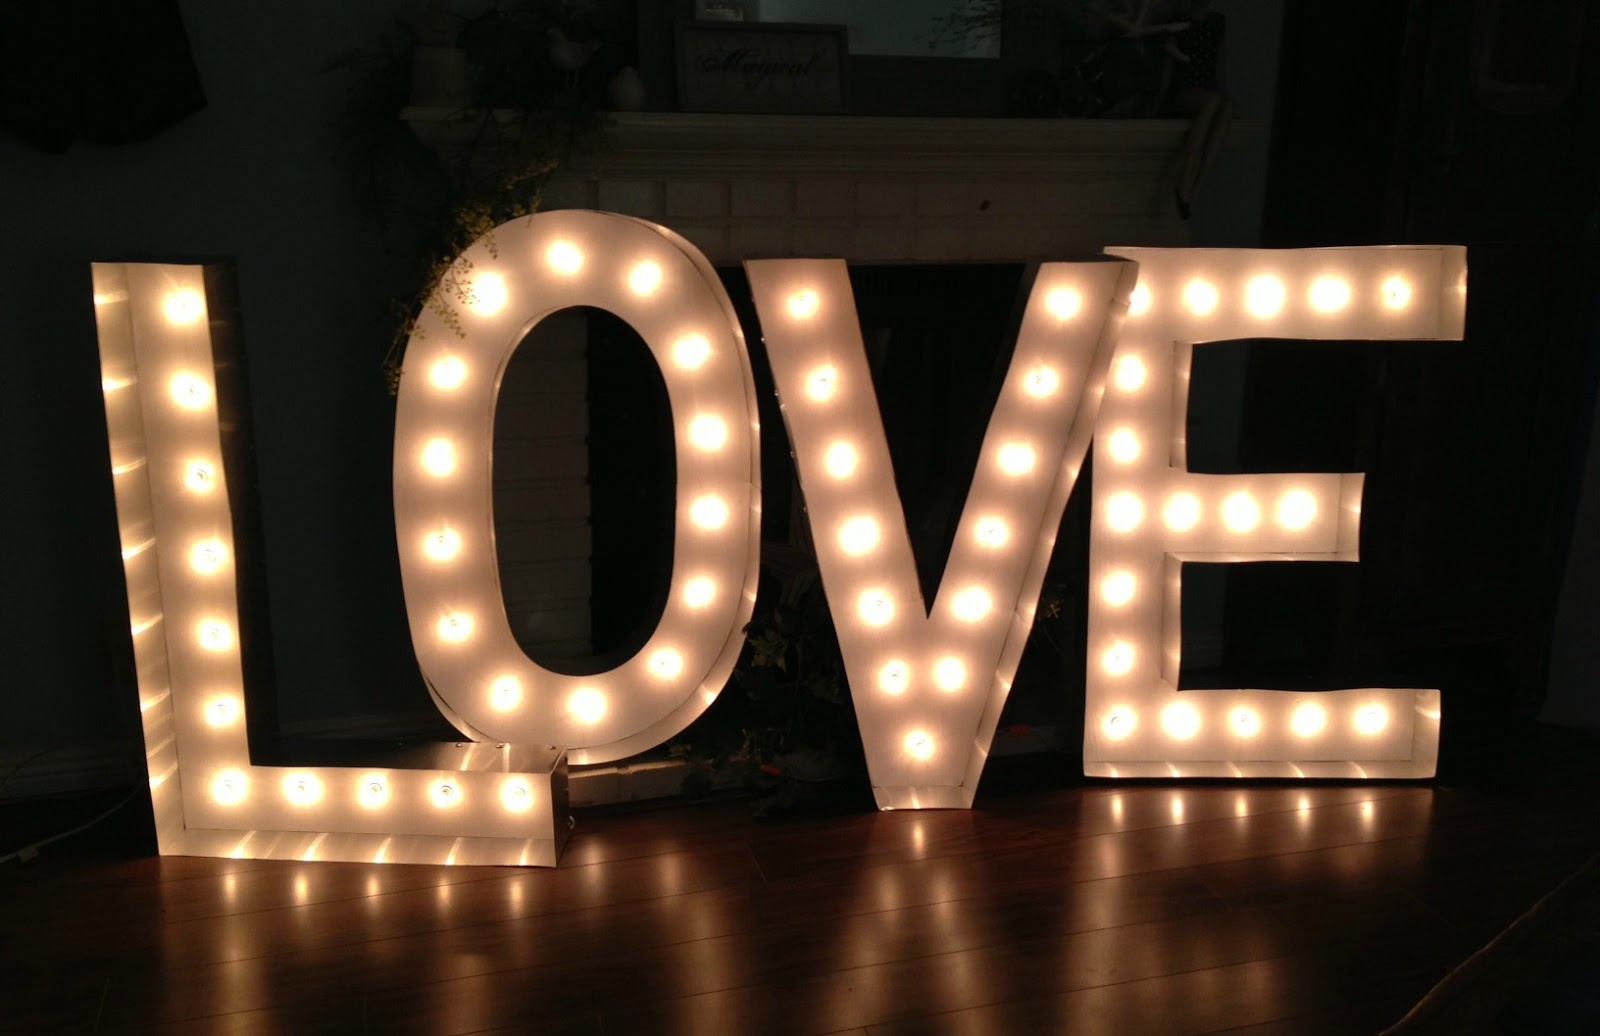 it will be on its way tomorrow to an adorable couple that will use the love letters as a backdrop for their wedding cant wait till they share pix of the